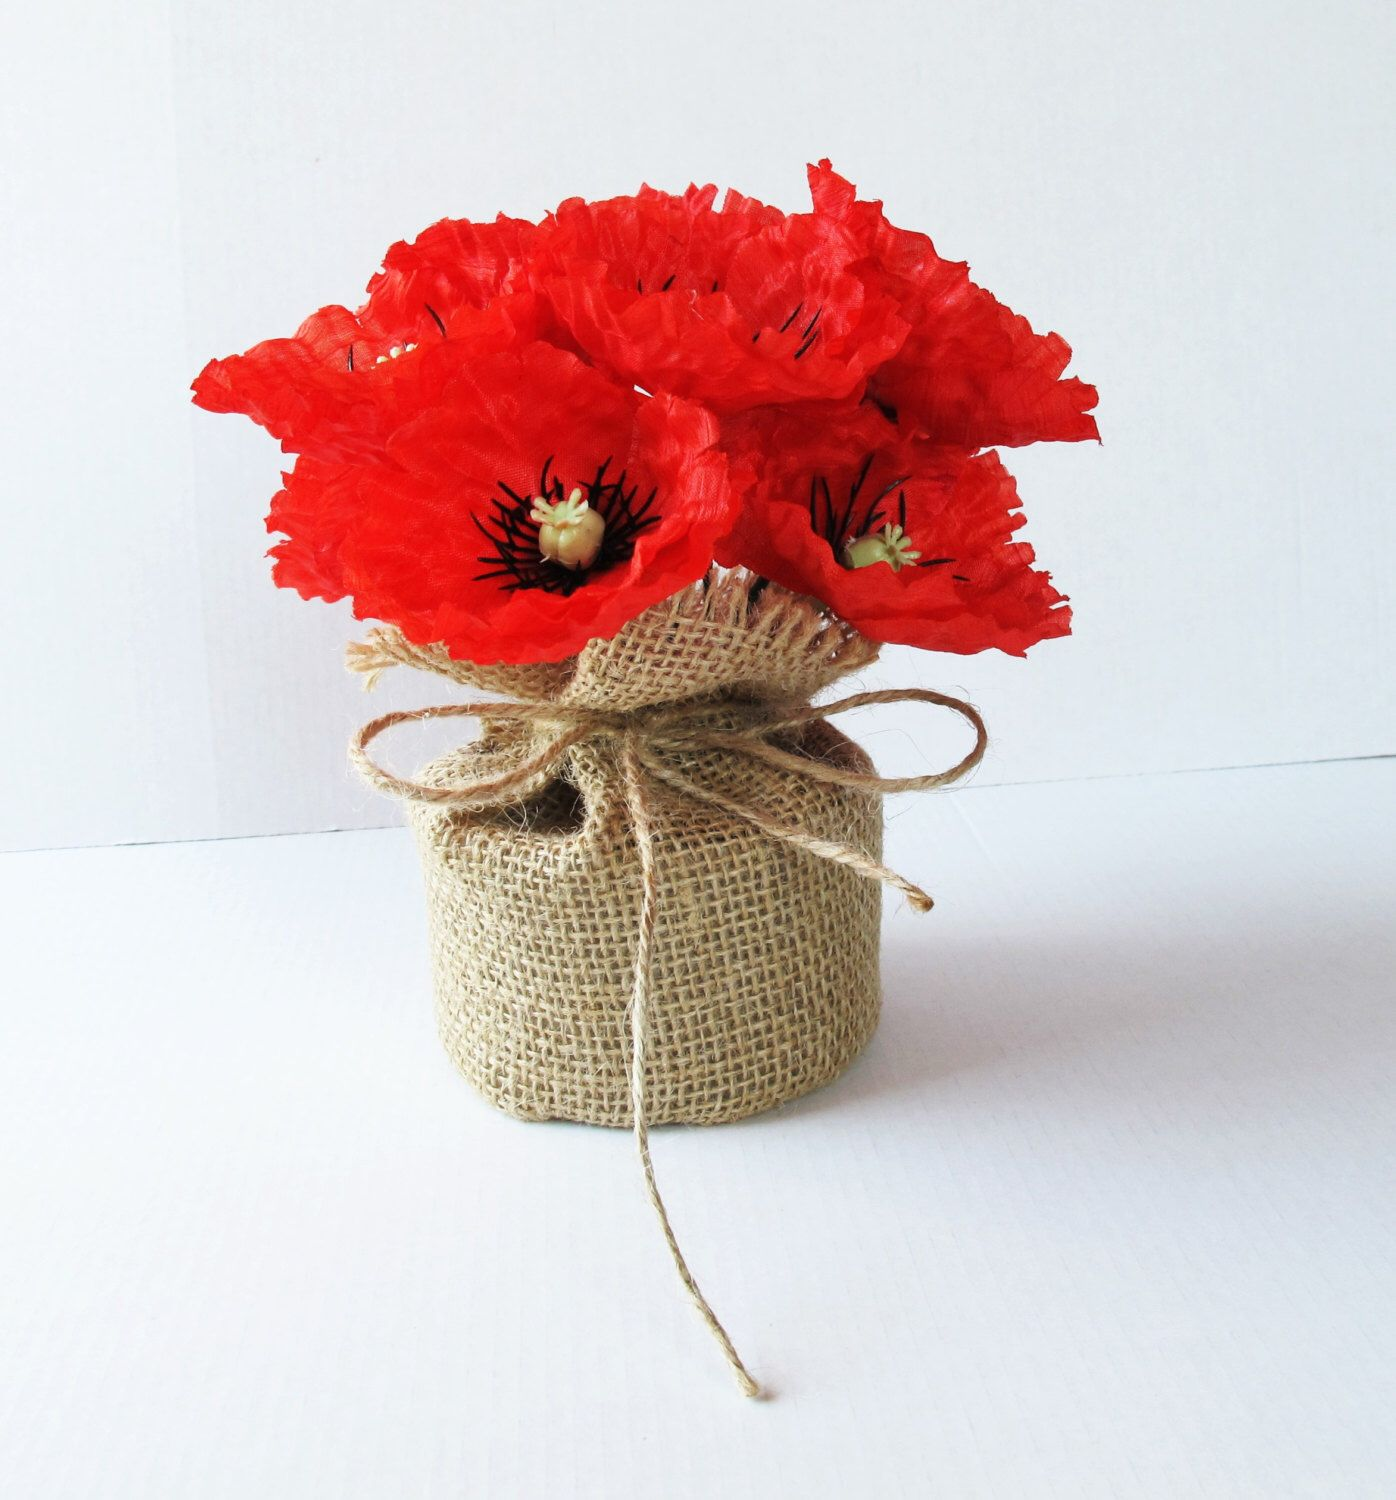 Artificial poppy flower arrangement home design ideas pin by theresa callicott on diy projects pinterest artificial mightylinksfo